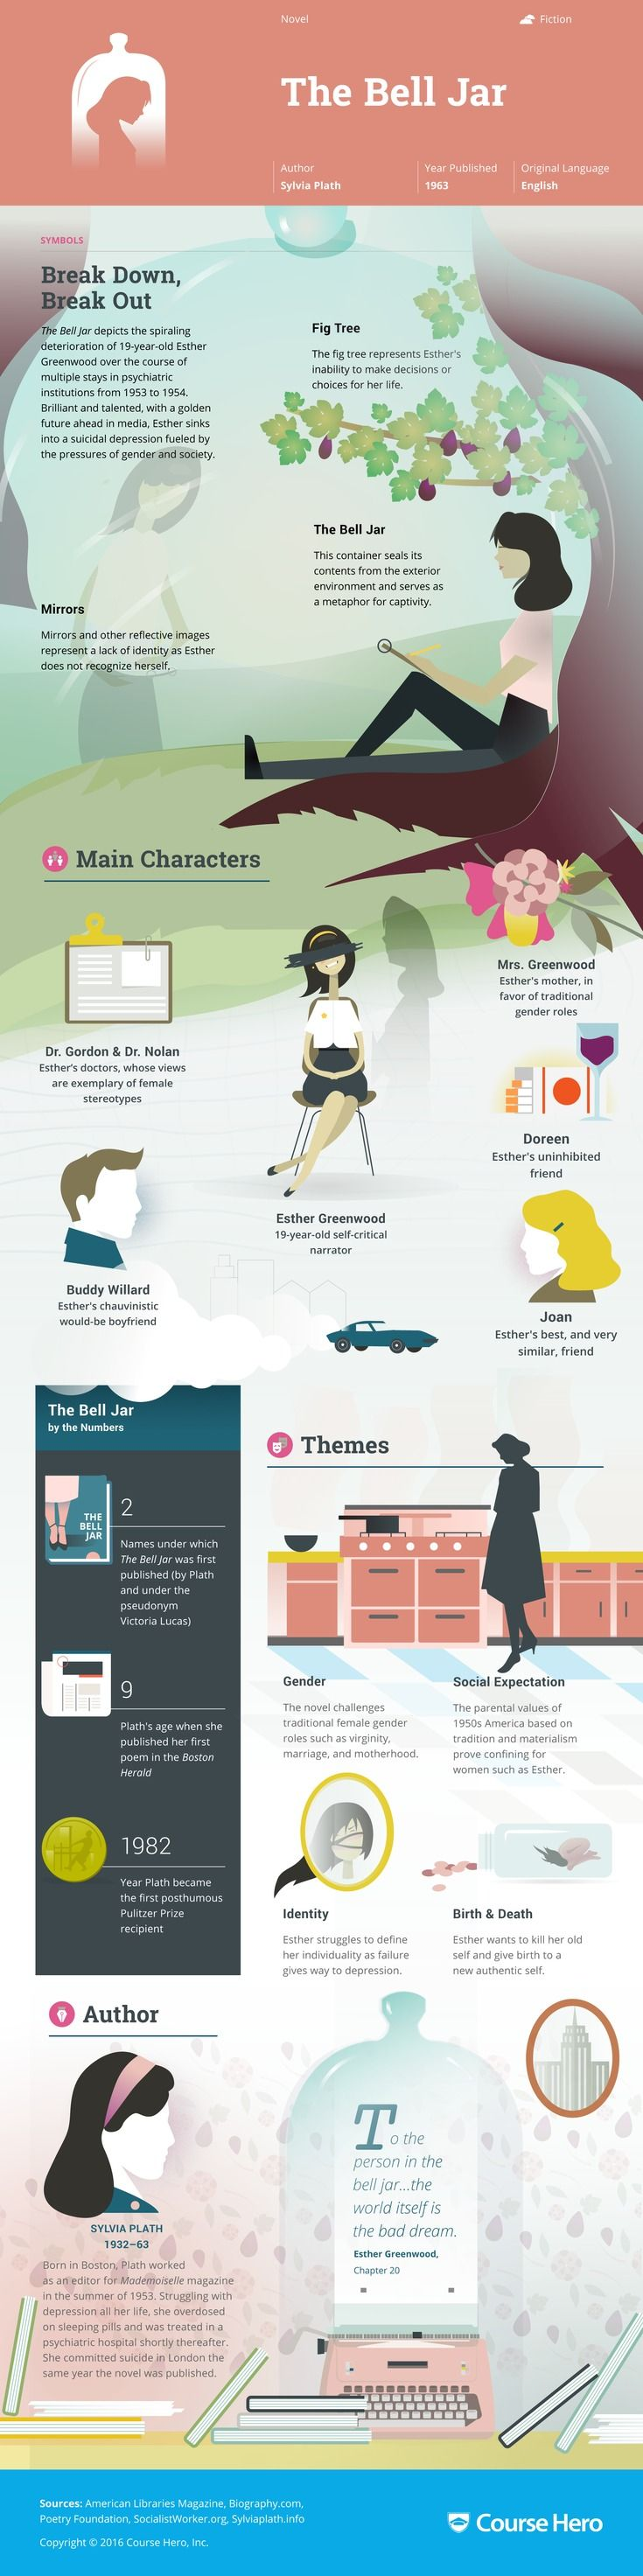 This 'The Bell Jar' infographic from Course Hero is as awesome as it is helpful. Check it out!